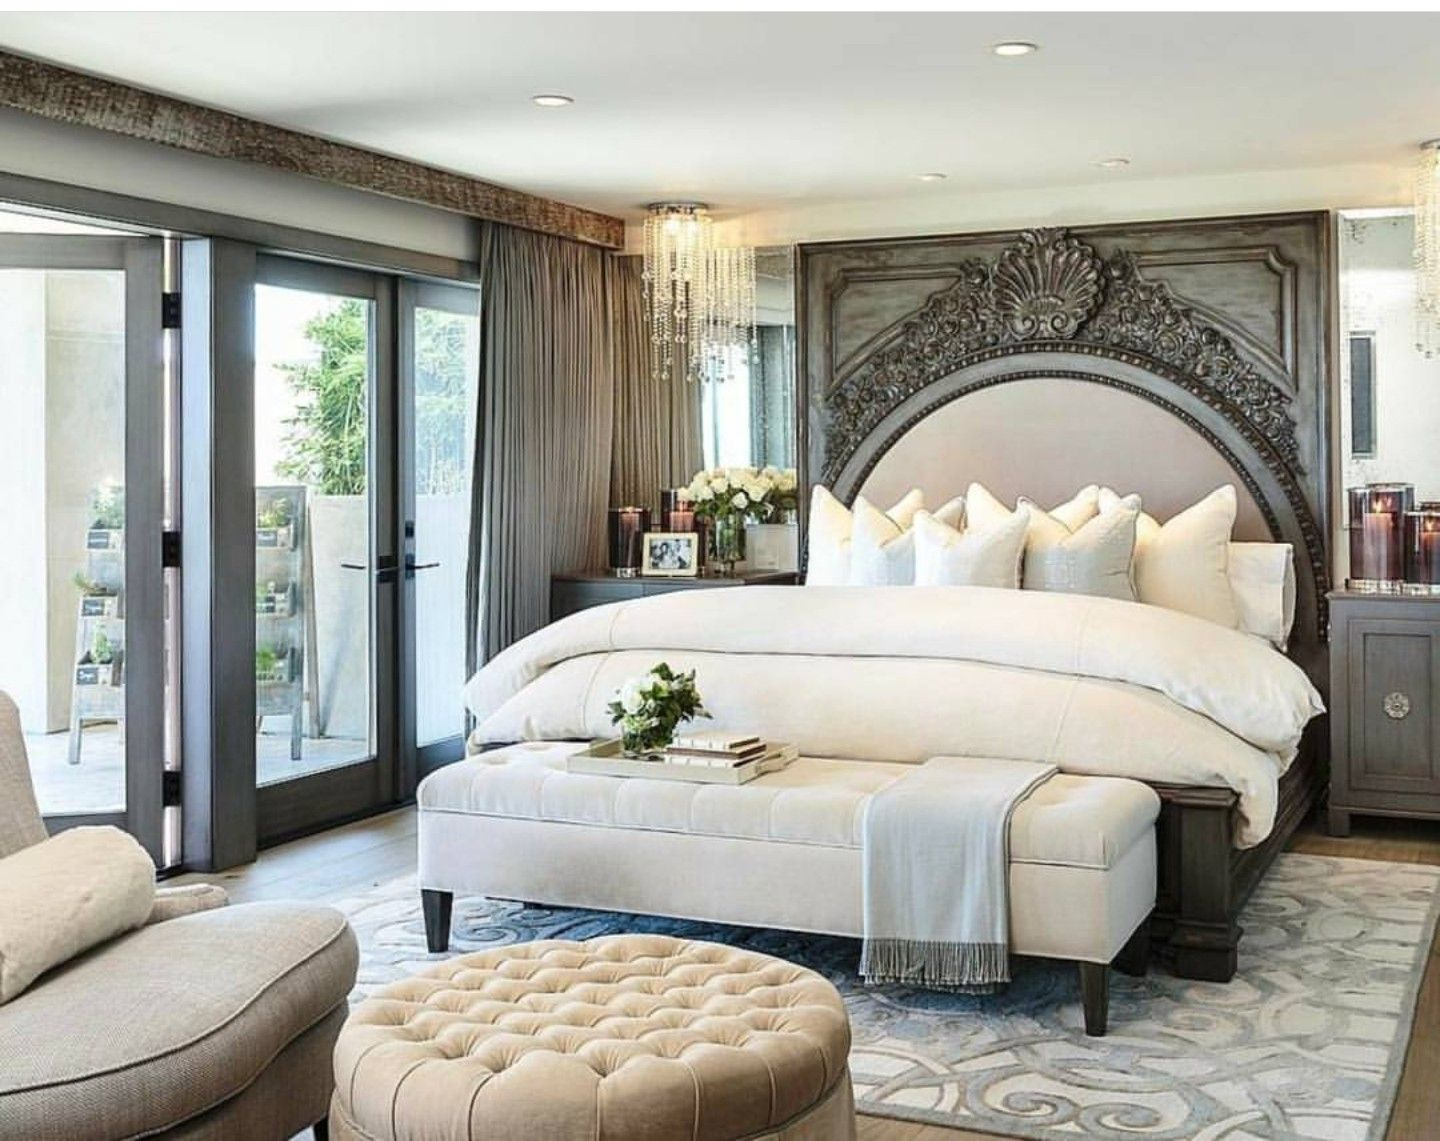 Luxurious bedrooms image by Kimberly Hoffer on Home